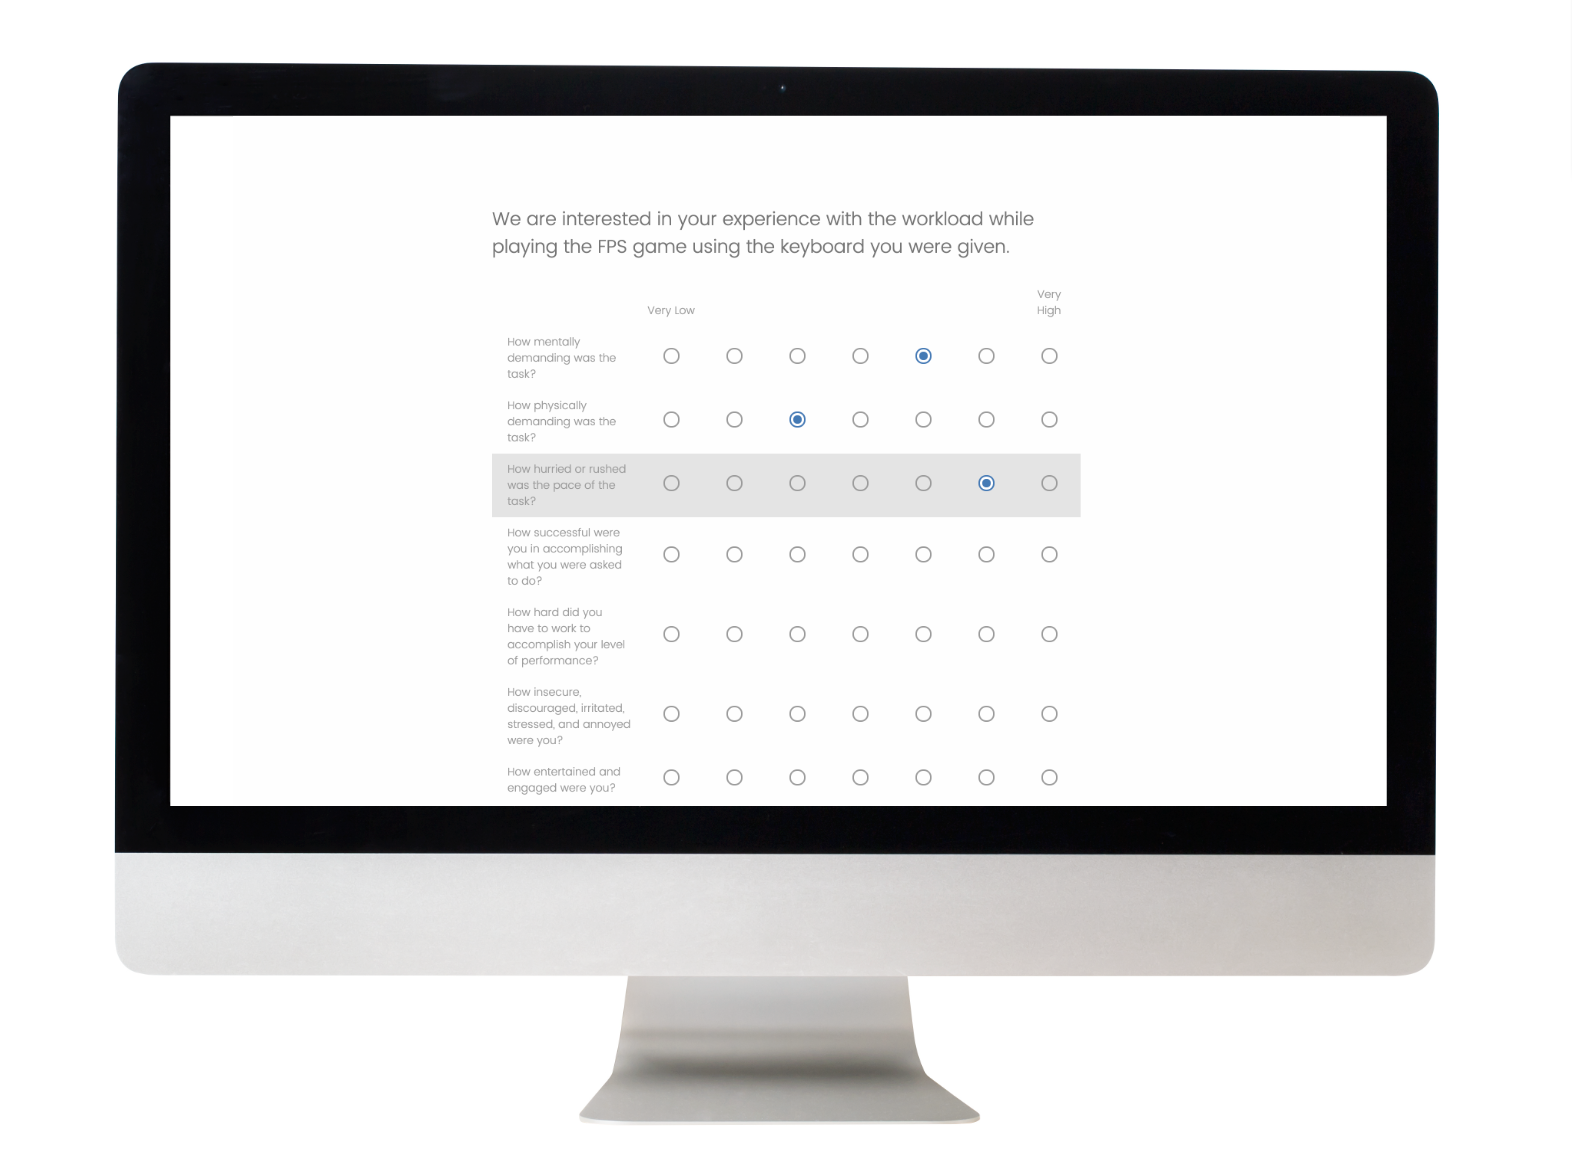 Mockup of the survey experience on the participant's end (powered by Qualtrics)